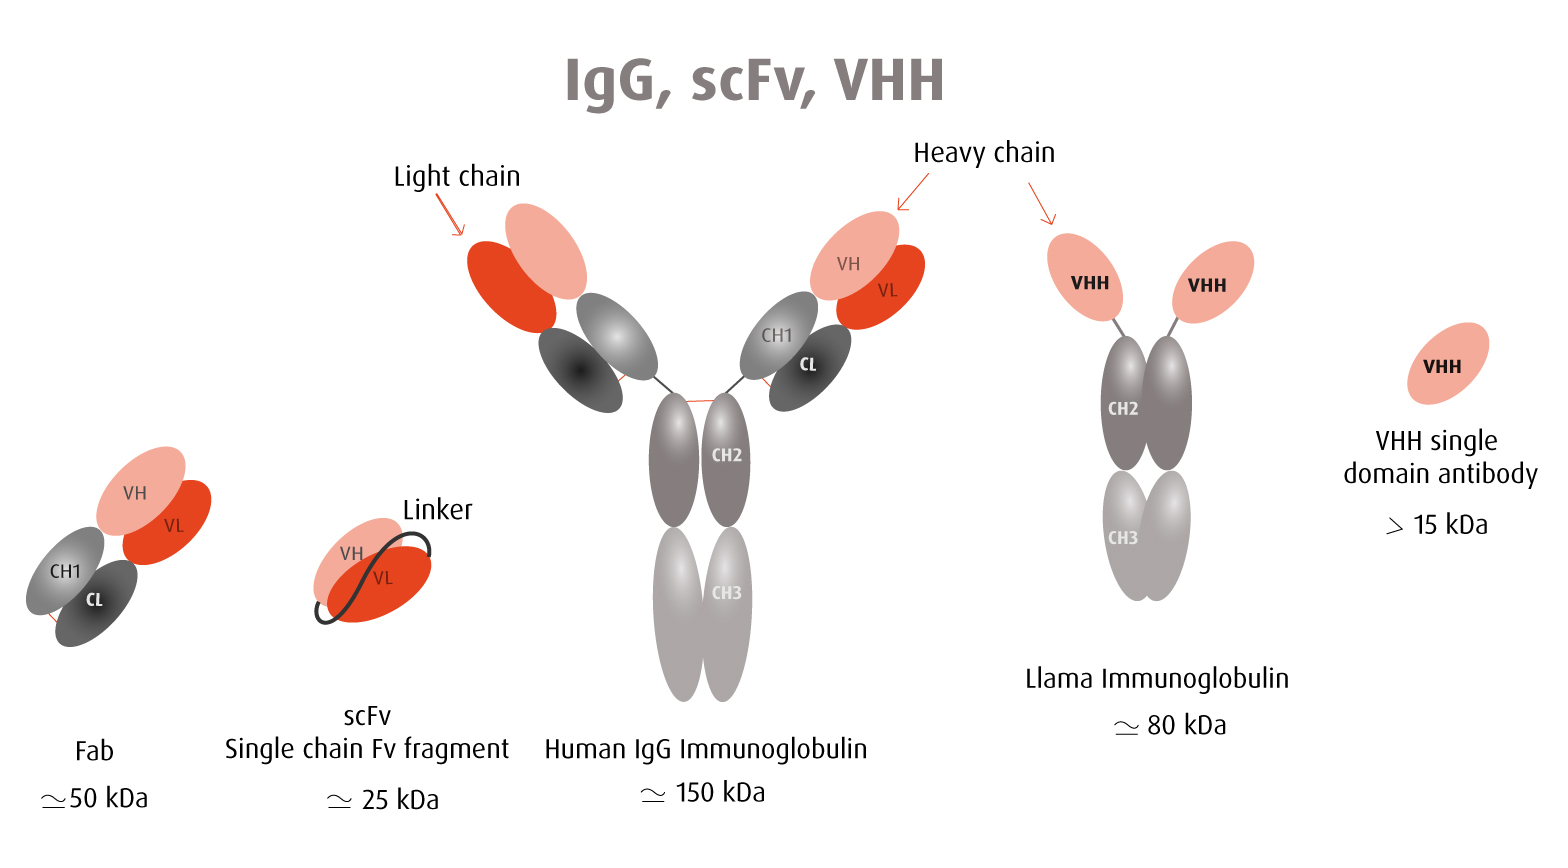 Comparison between a VHH antibody and a full immunoglobulin